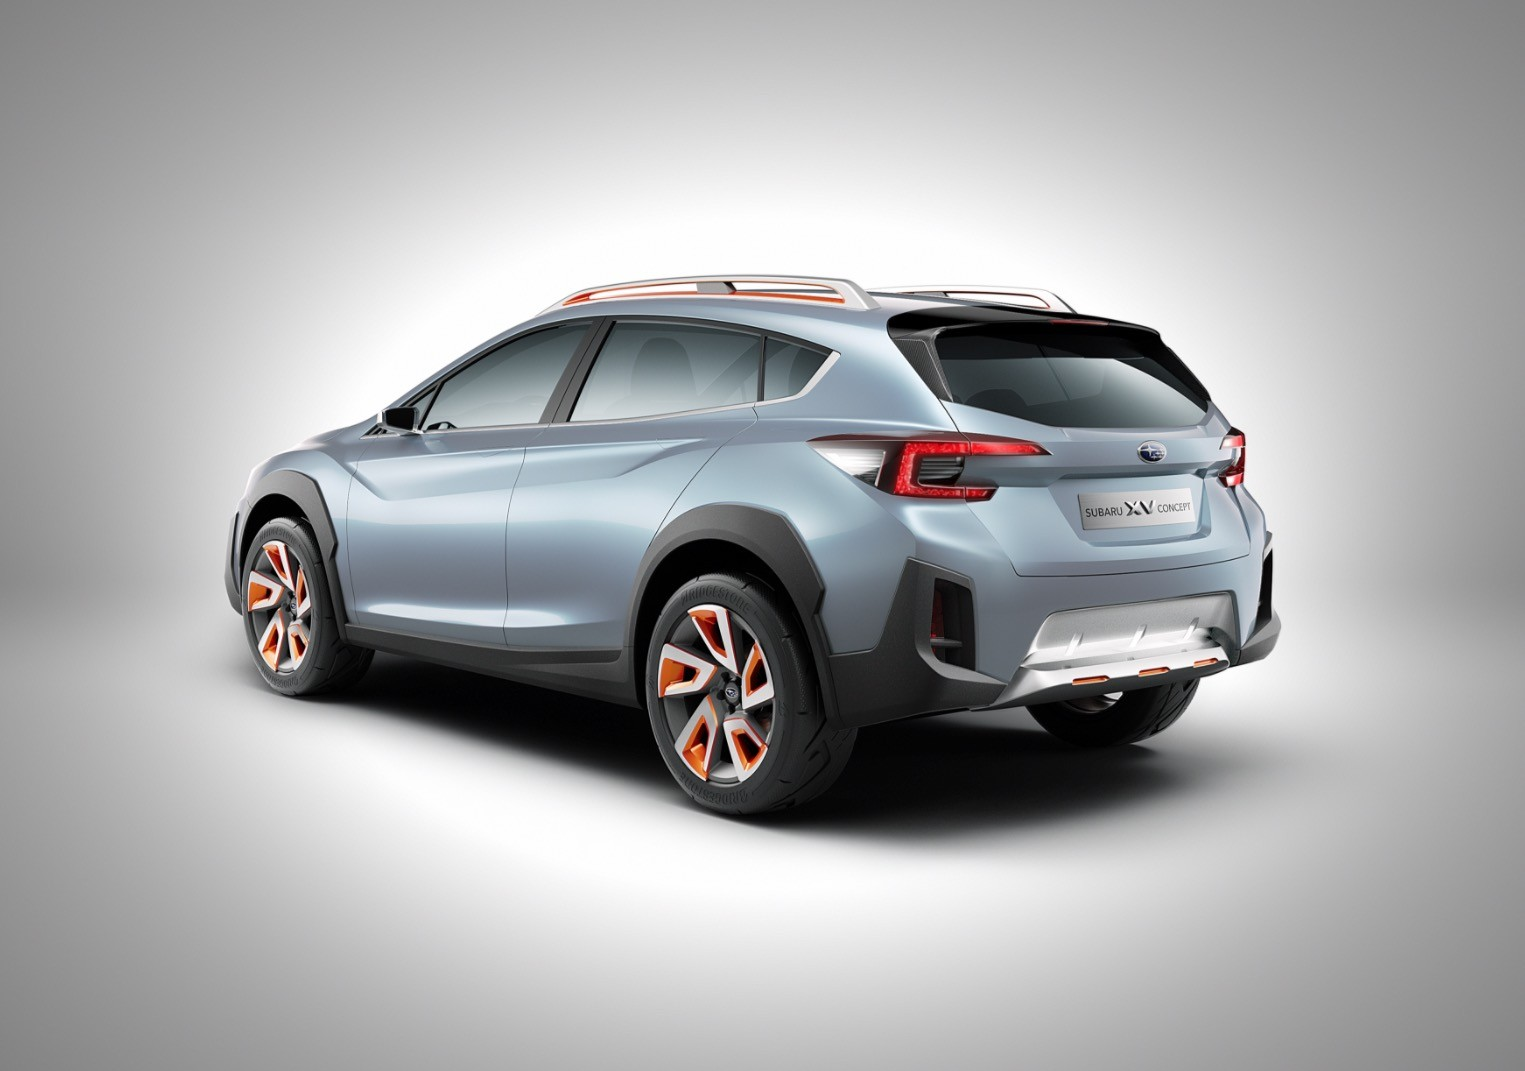 2018 subaru xv crosstrek teased confirmed to debut at 2017 geneva motor show autoevolution. Black Bedroom Furniture Sets. Home Design Ideas